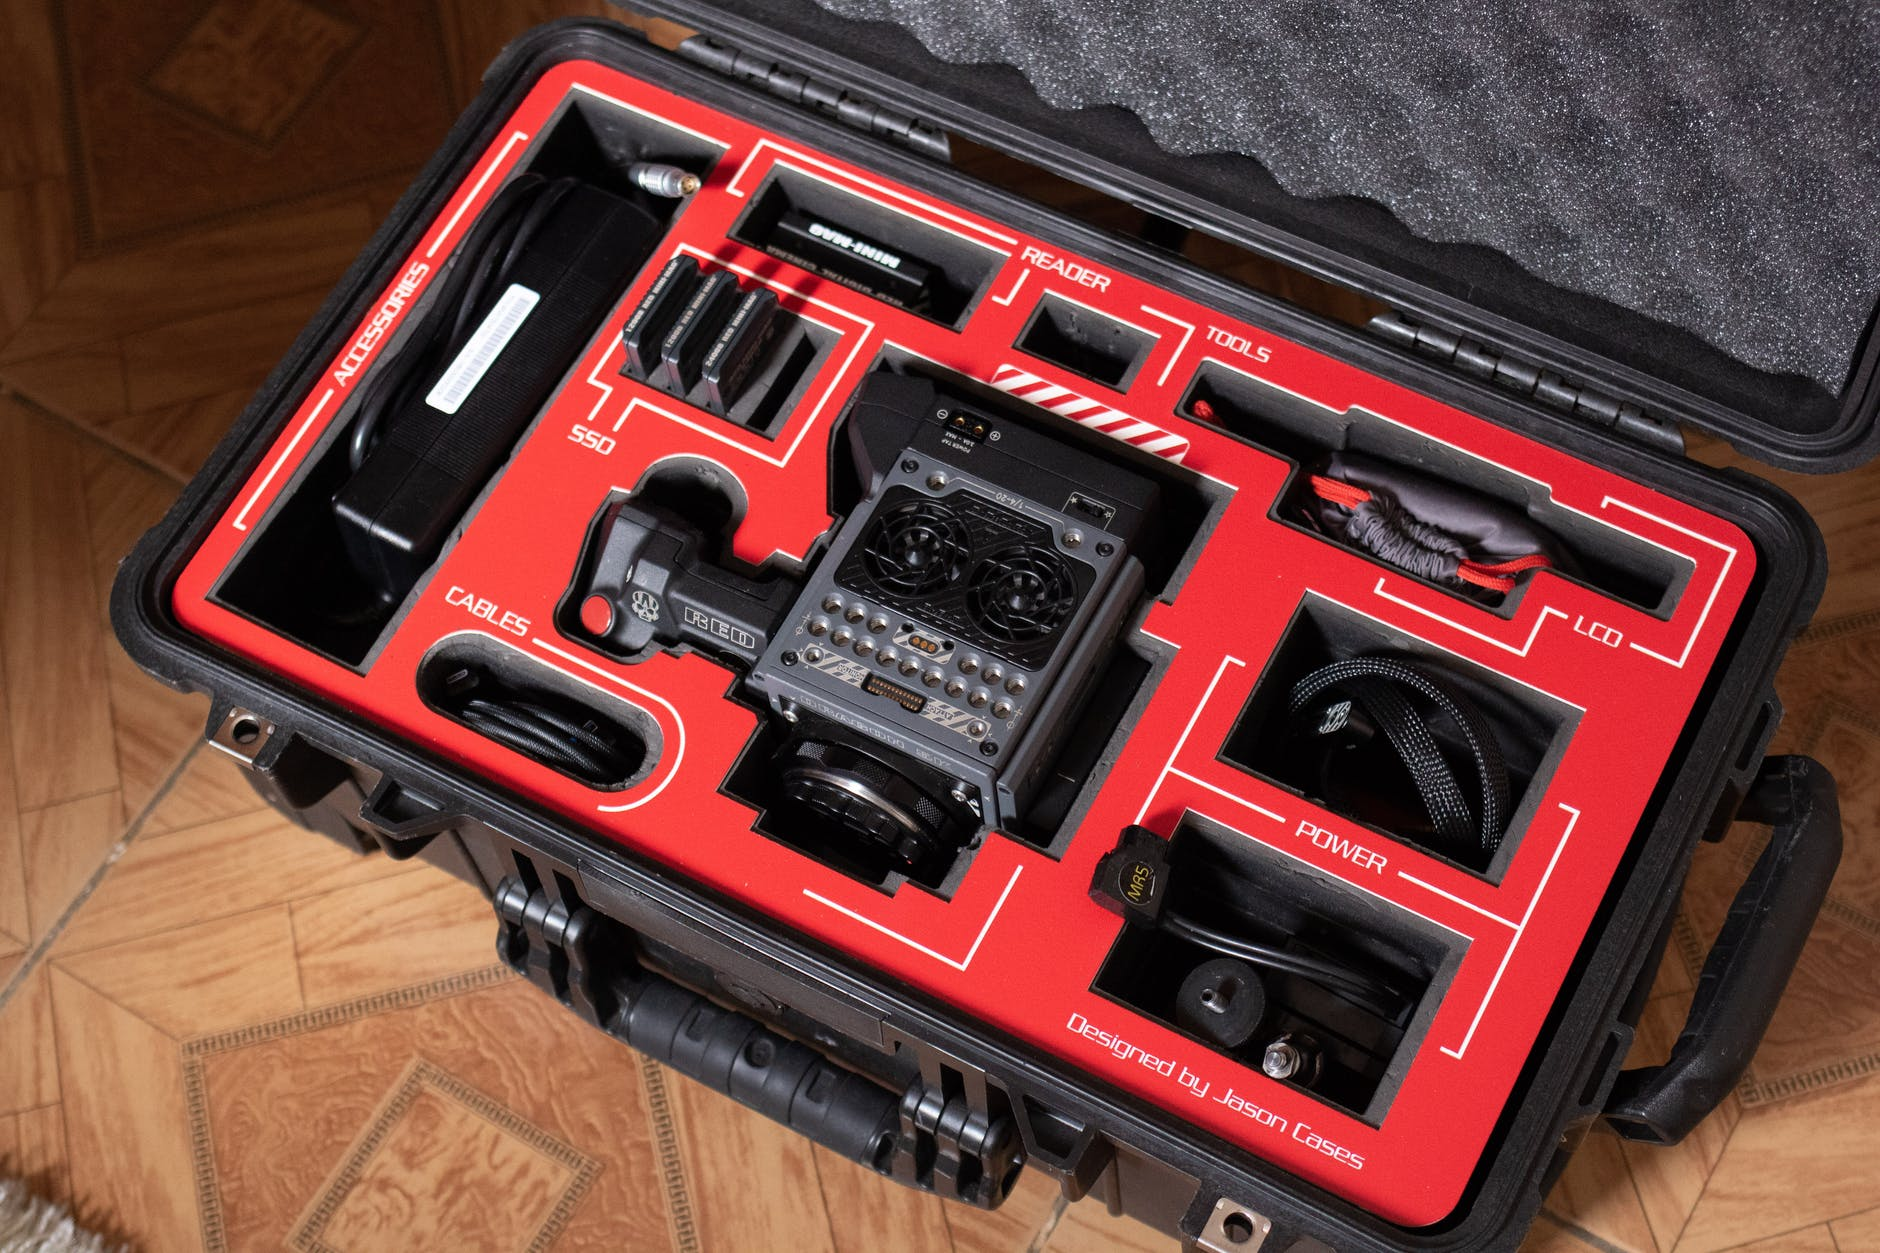 image - What Are the Power Tools That You Will Typically Find in Most Household Toolboxes?